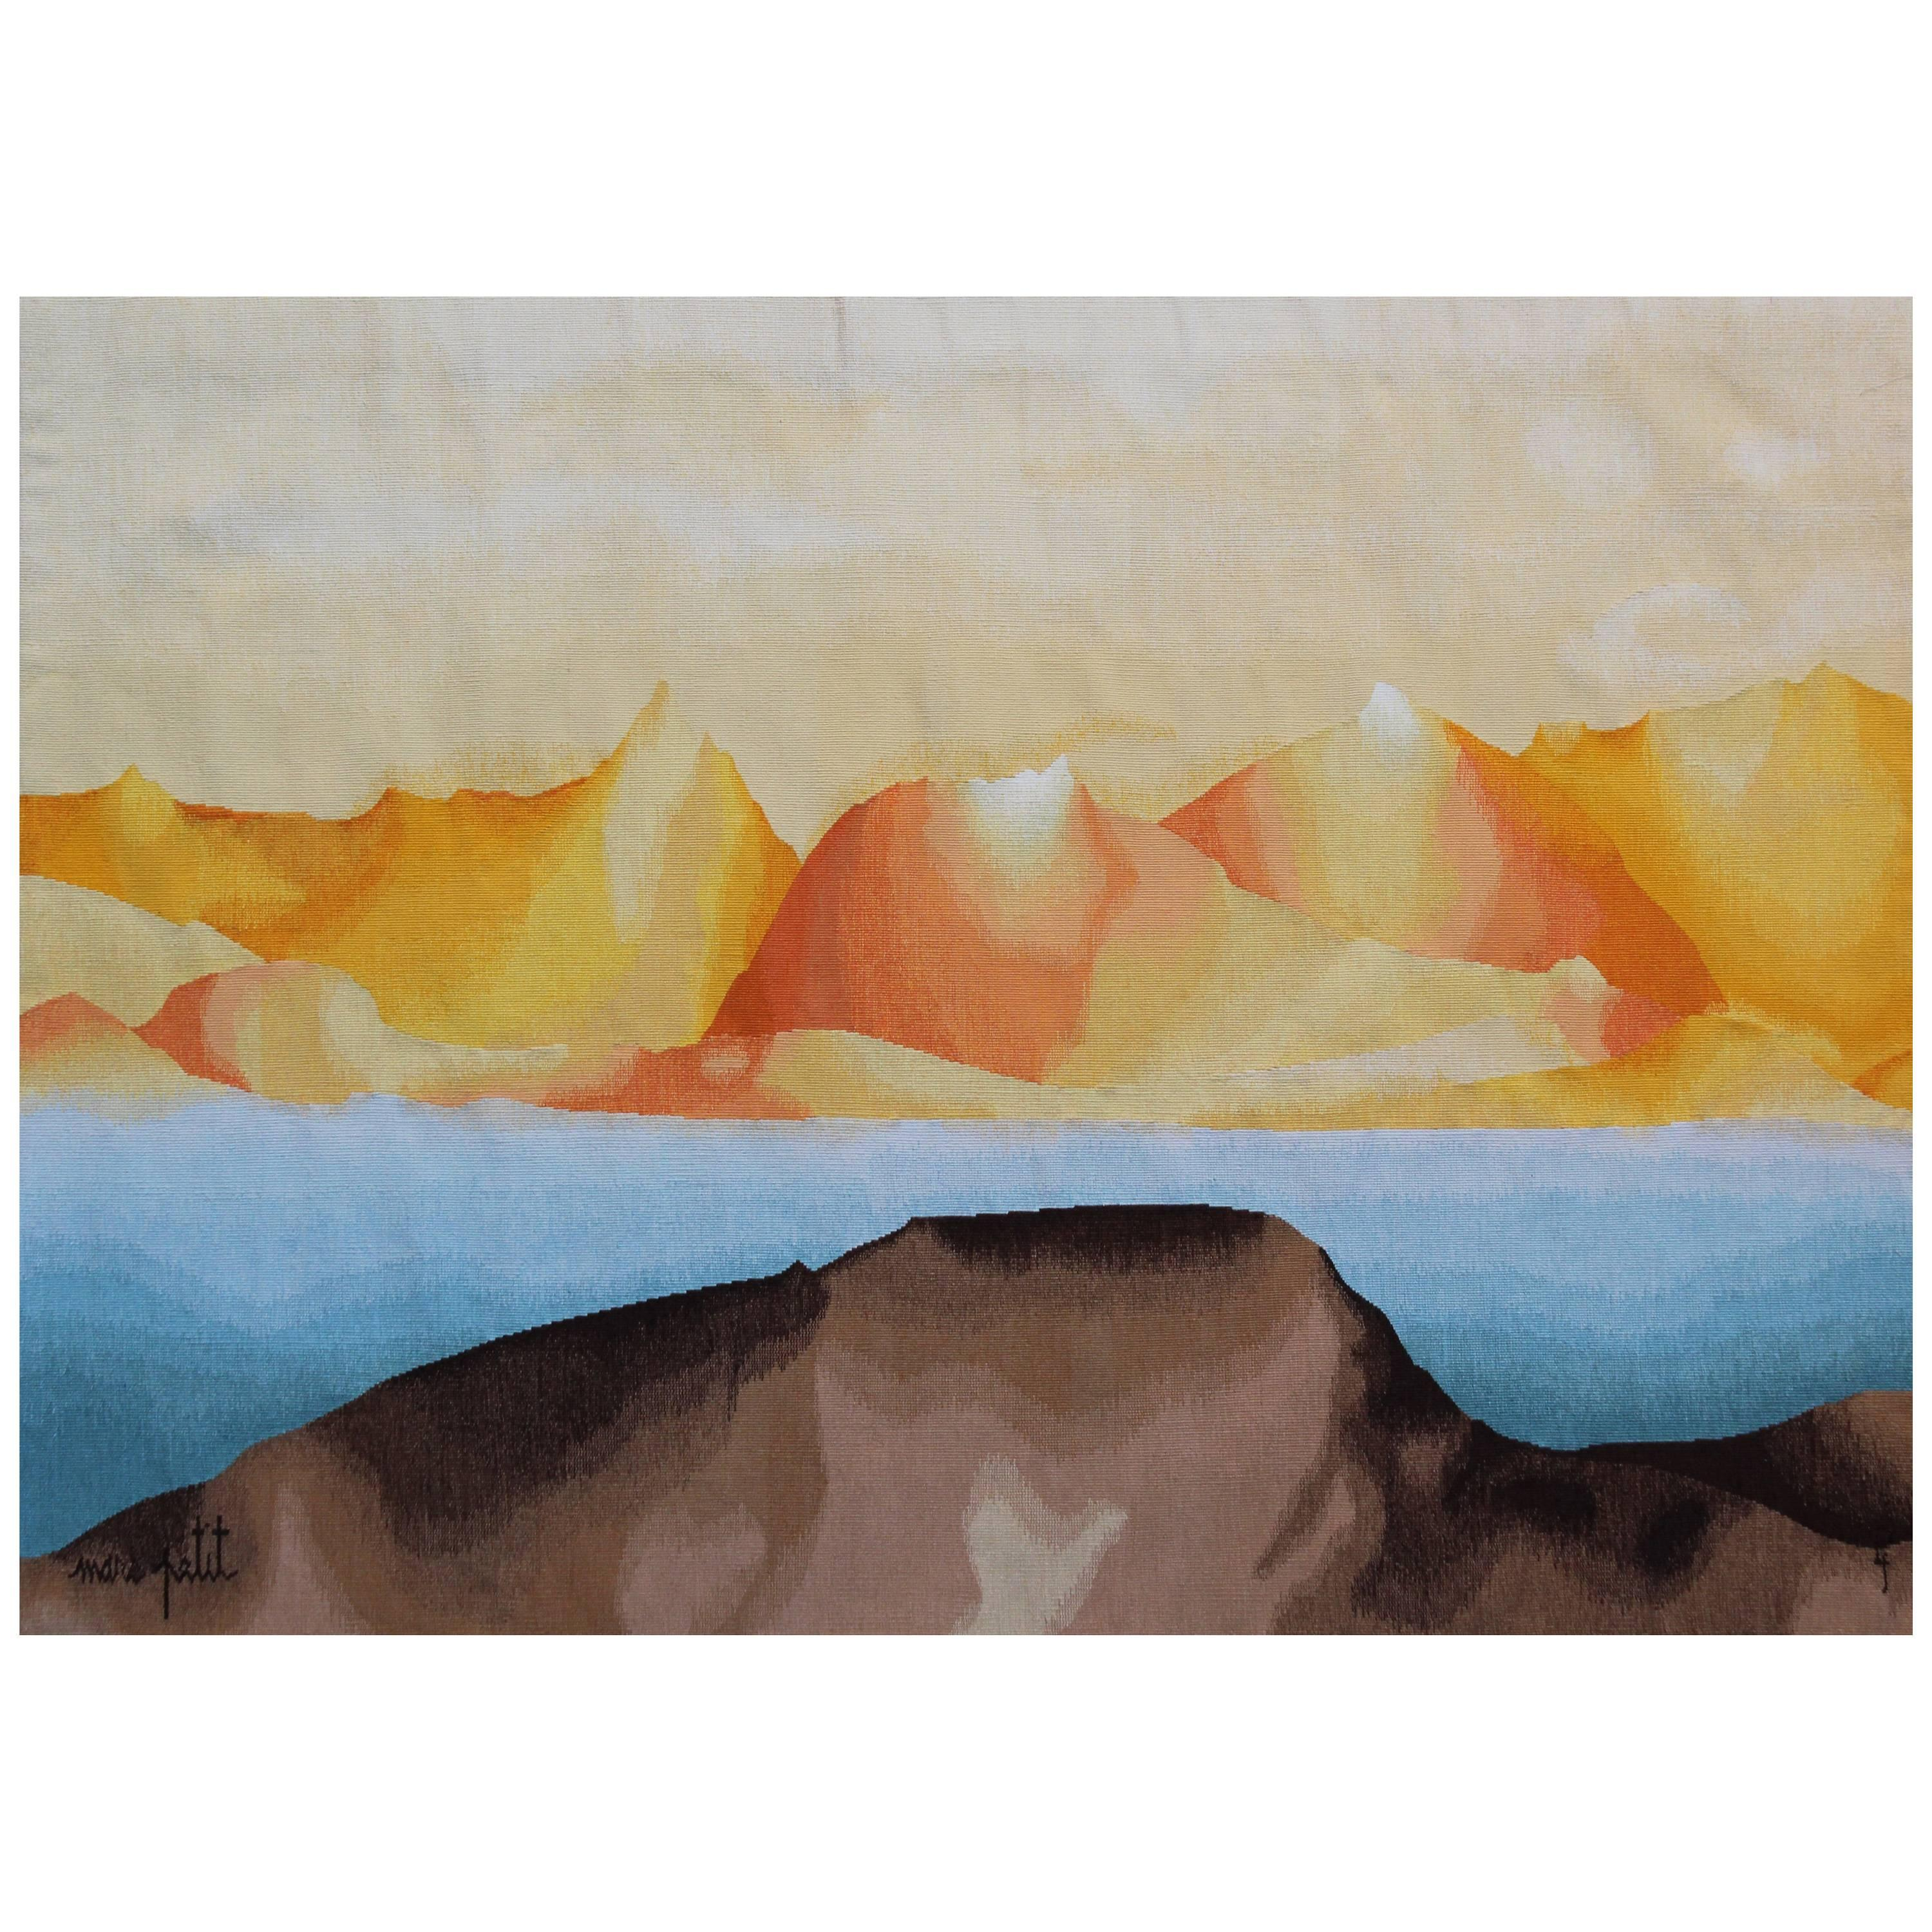 'L'Œil Respire' Wall Tapestry by Marc Petit & Pinton